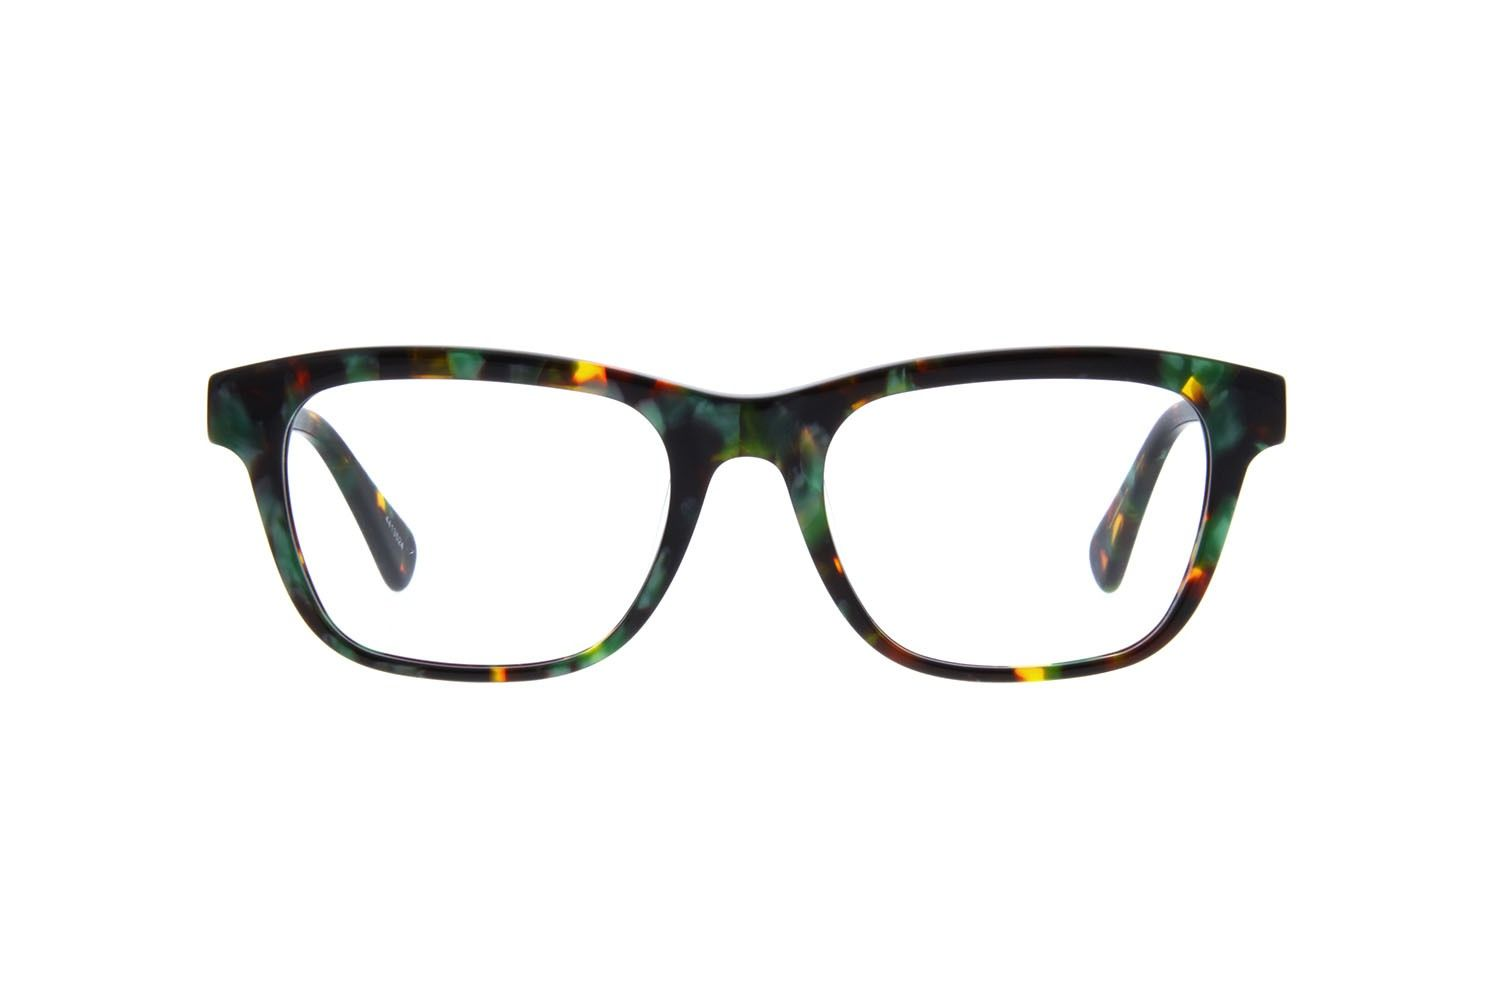 1c4ae9d50d7f Order online, unisex green full rim acetate square eyeglass frames model  #4413524. Visit Zenni Optical today to browse our collection of glasses and  ...